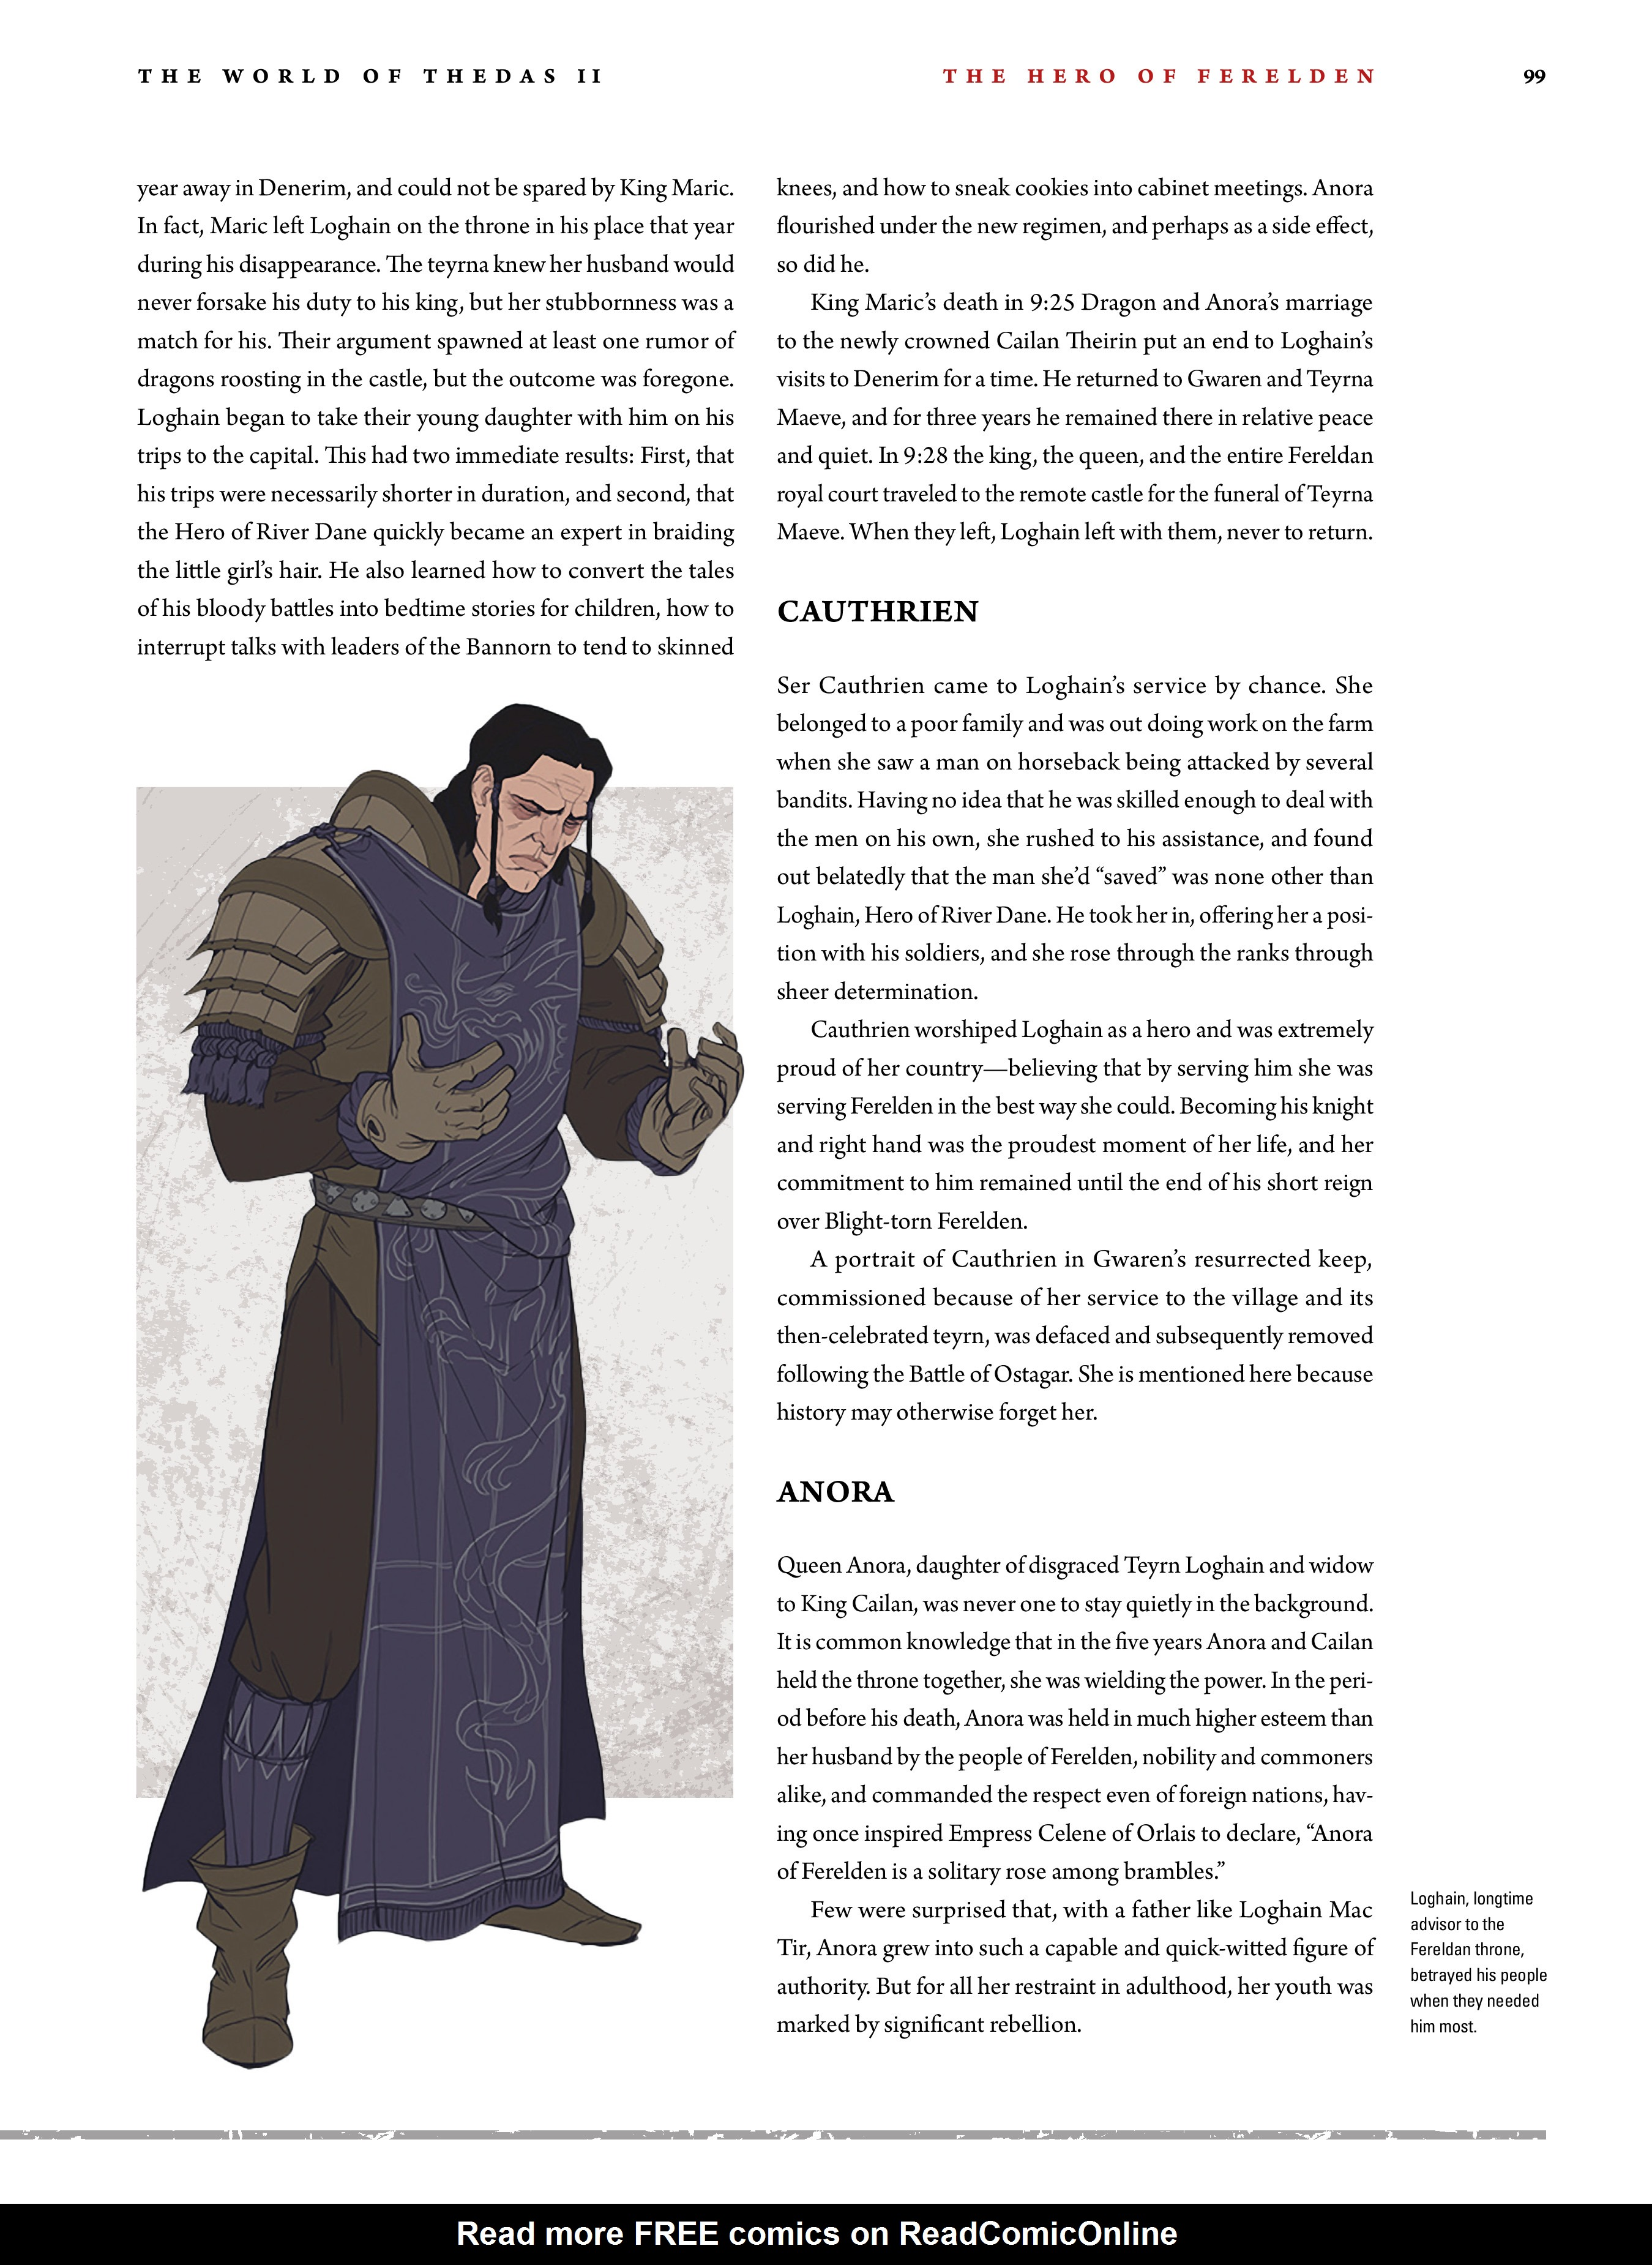 Read online Dragon Age: The World of Thedas comic -  Issue # TPB 2 - 95